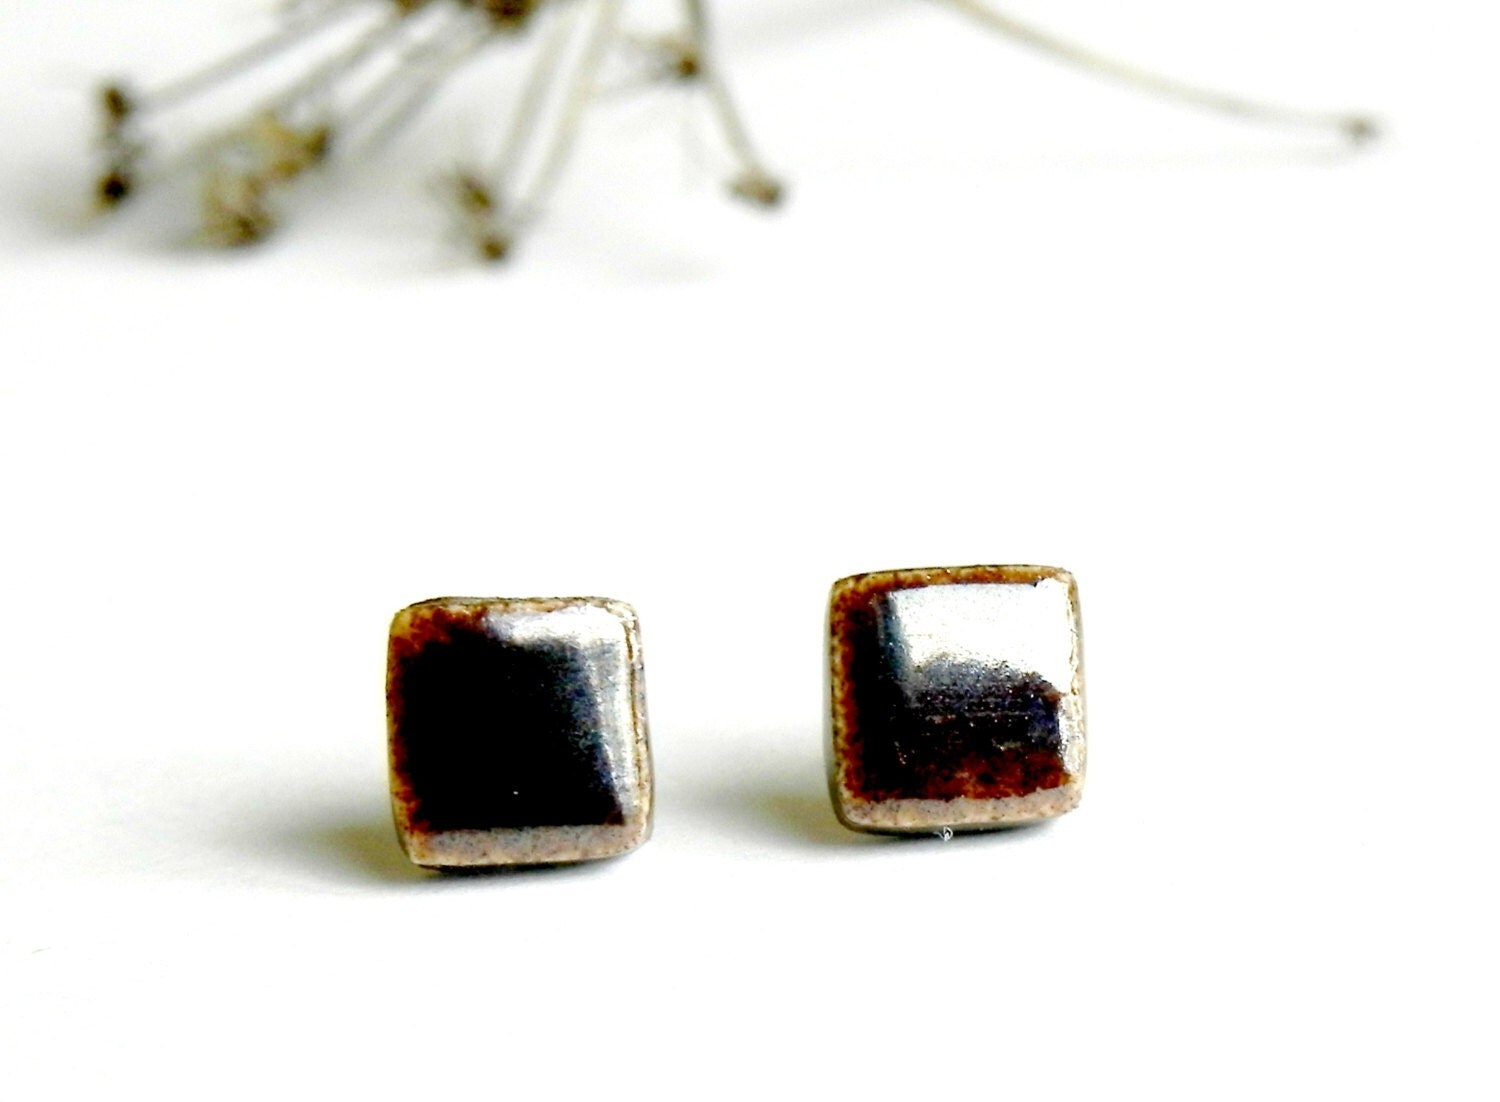 Black Bronze Unisex Stud Earrings Geometric Minimalist Square Earrings Post Contemporary DesingShiny Hypoallergenic  Earrings - LemoneRouge